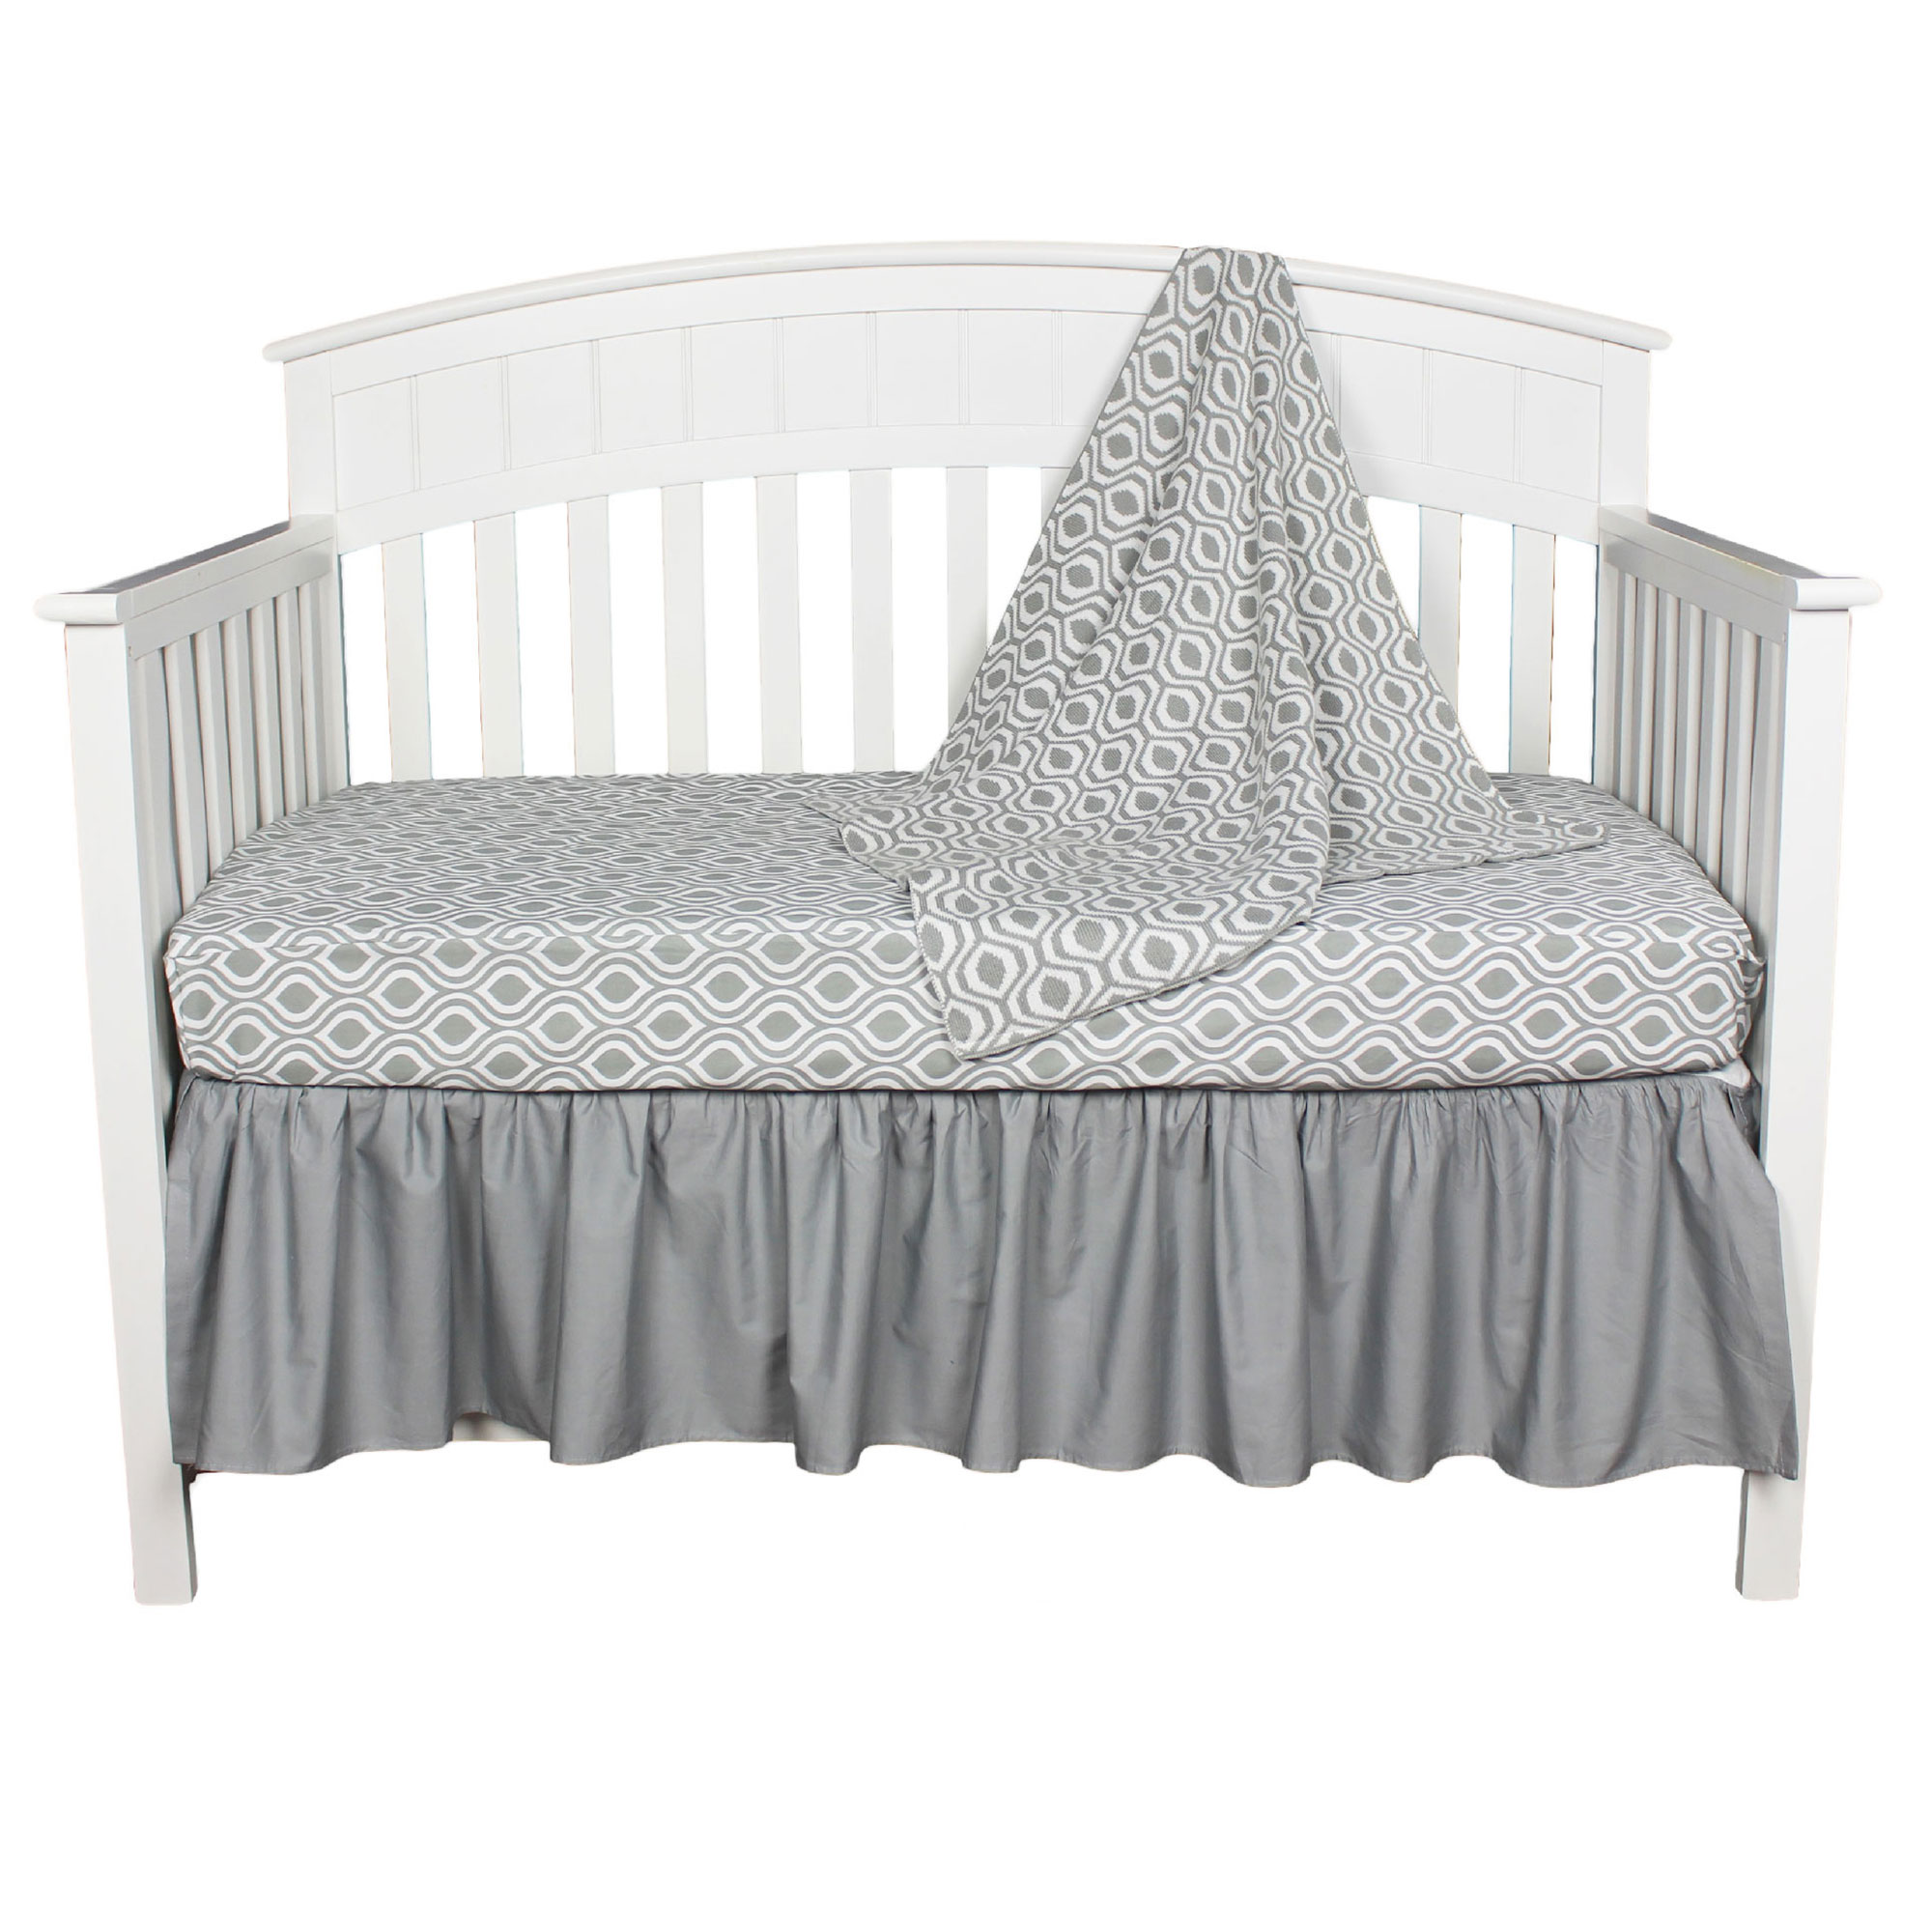 American Baby Company Crib Bedding Set - Grey and White Ogee - 3 Piece Baby Crib Bedding Set